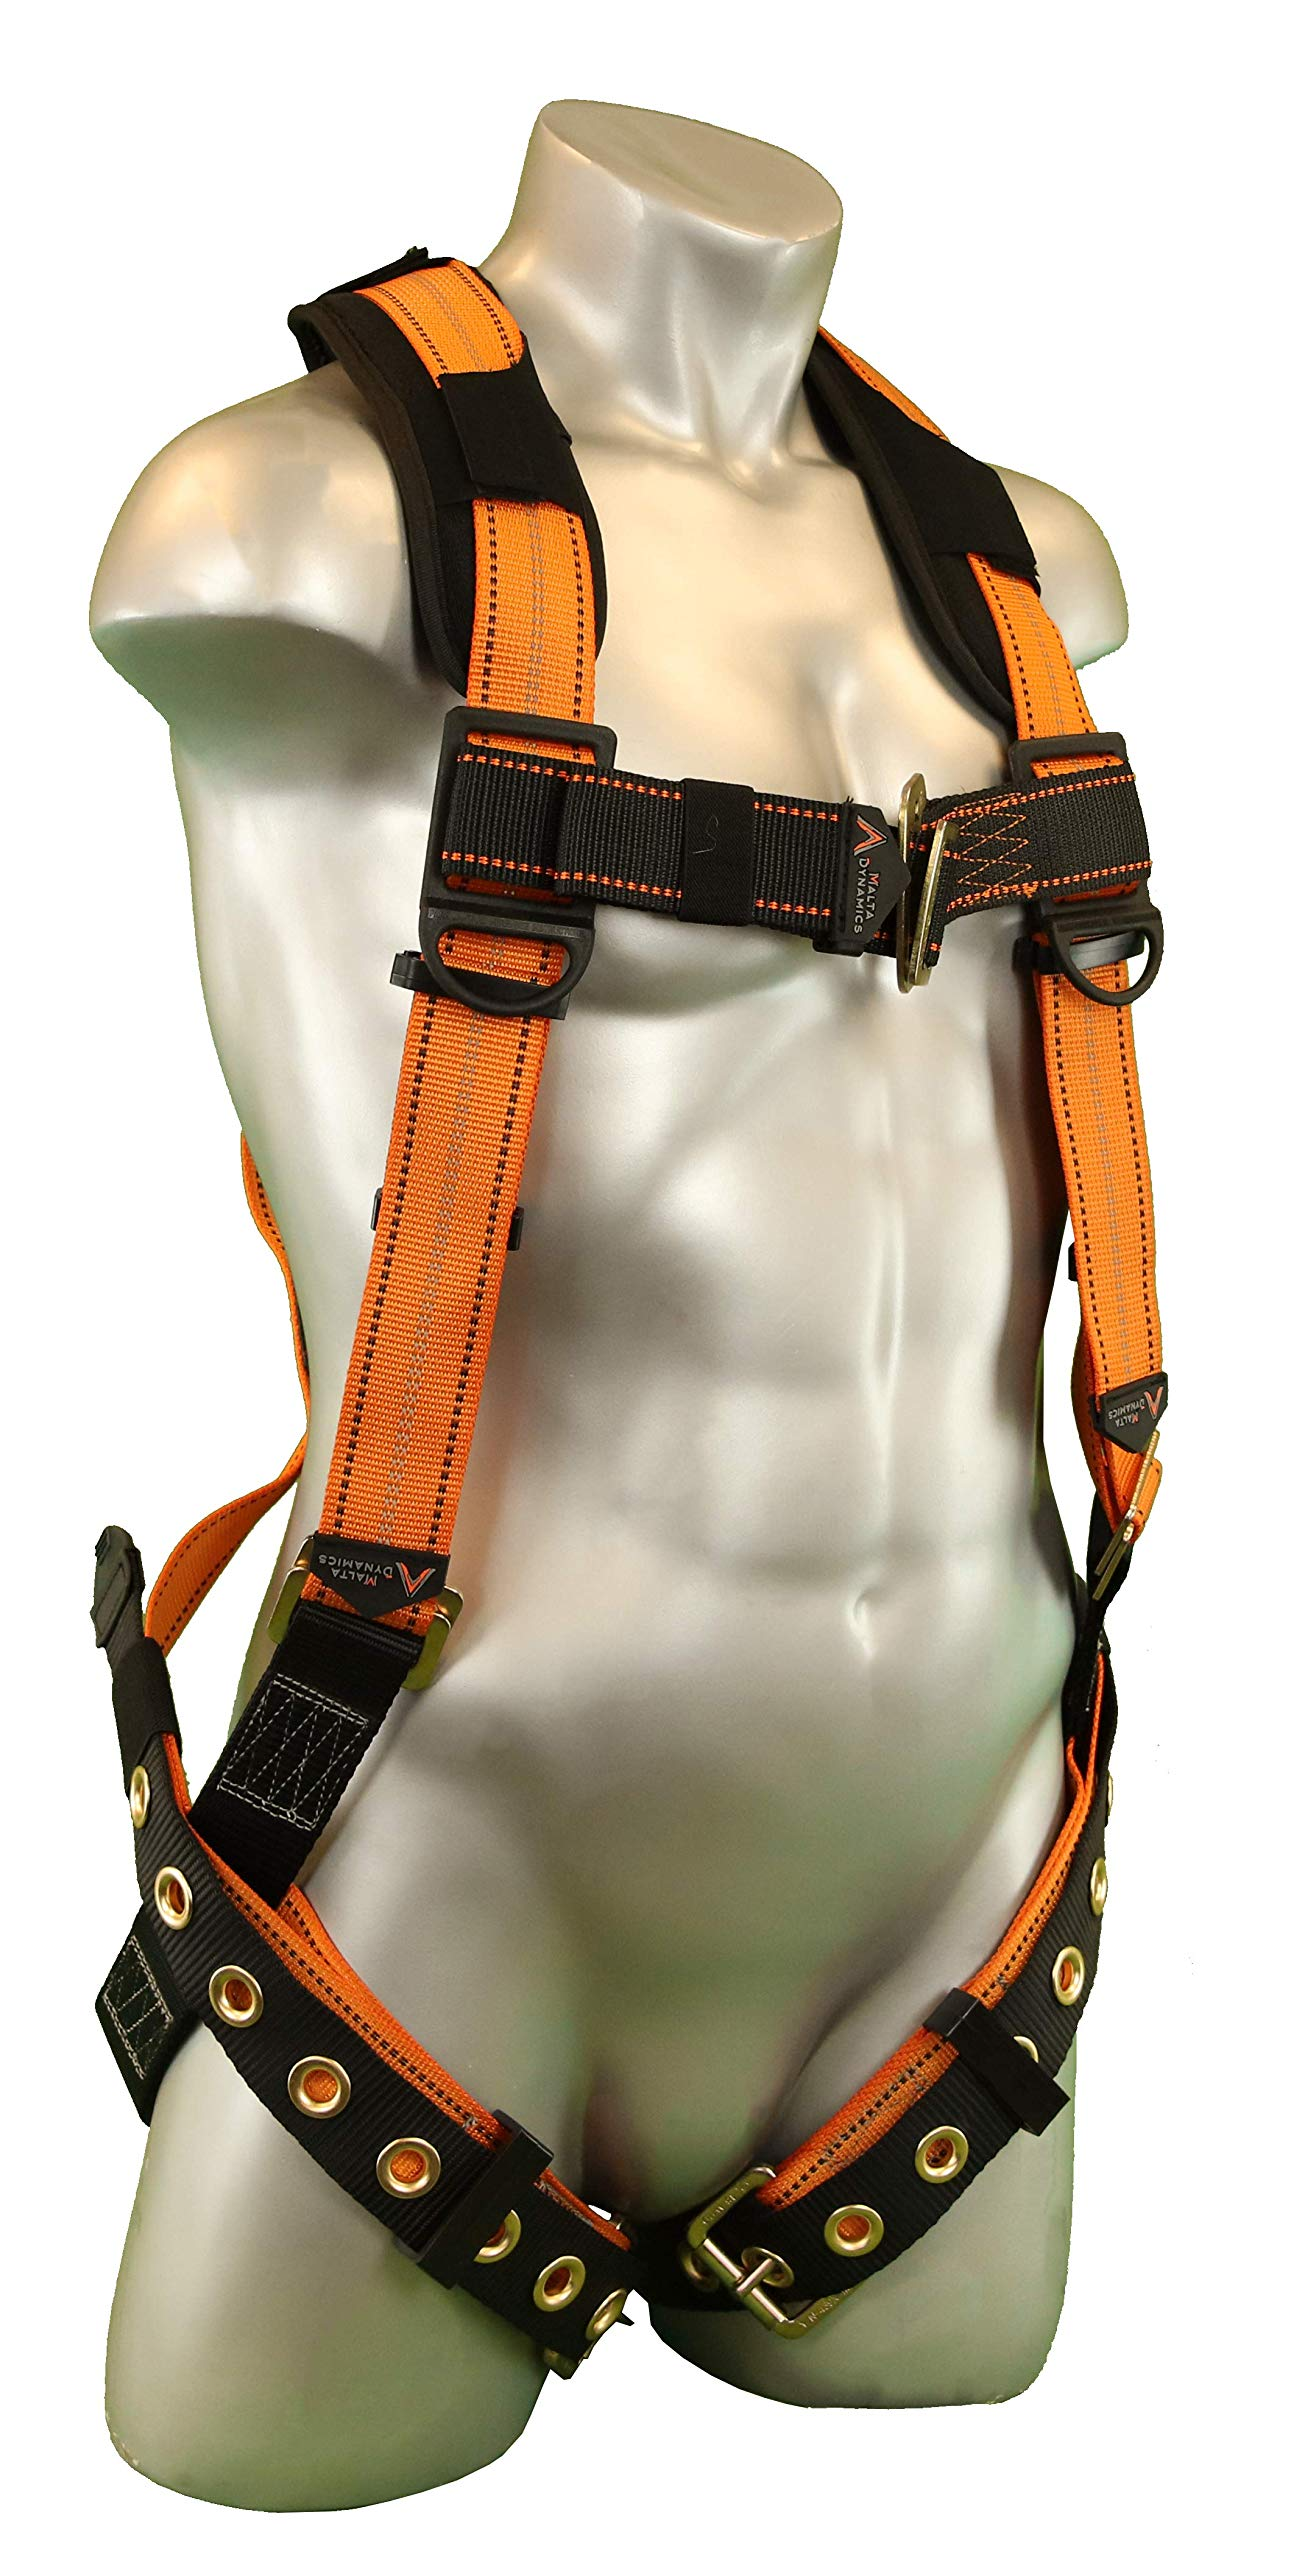 Warthog Full Body Harness with Tongue Buckle Legs & X-Pad (XS), OSHA/ANSI/CSA Compliant by Malta Dynamics